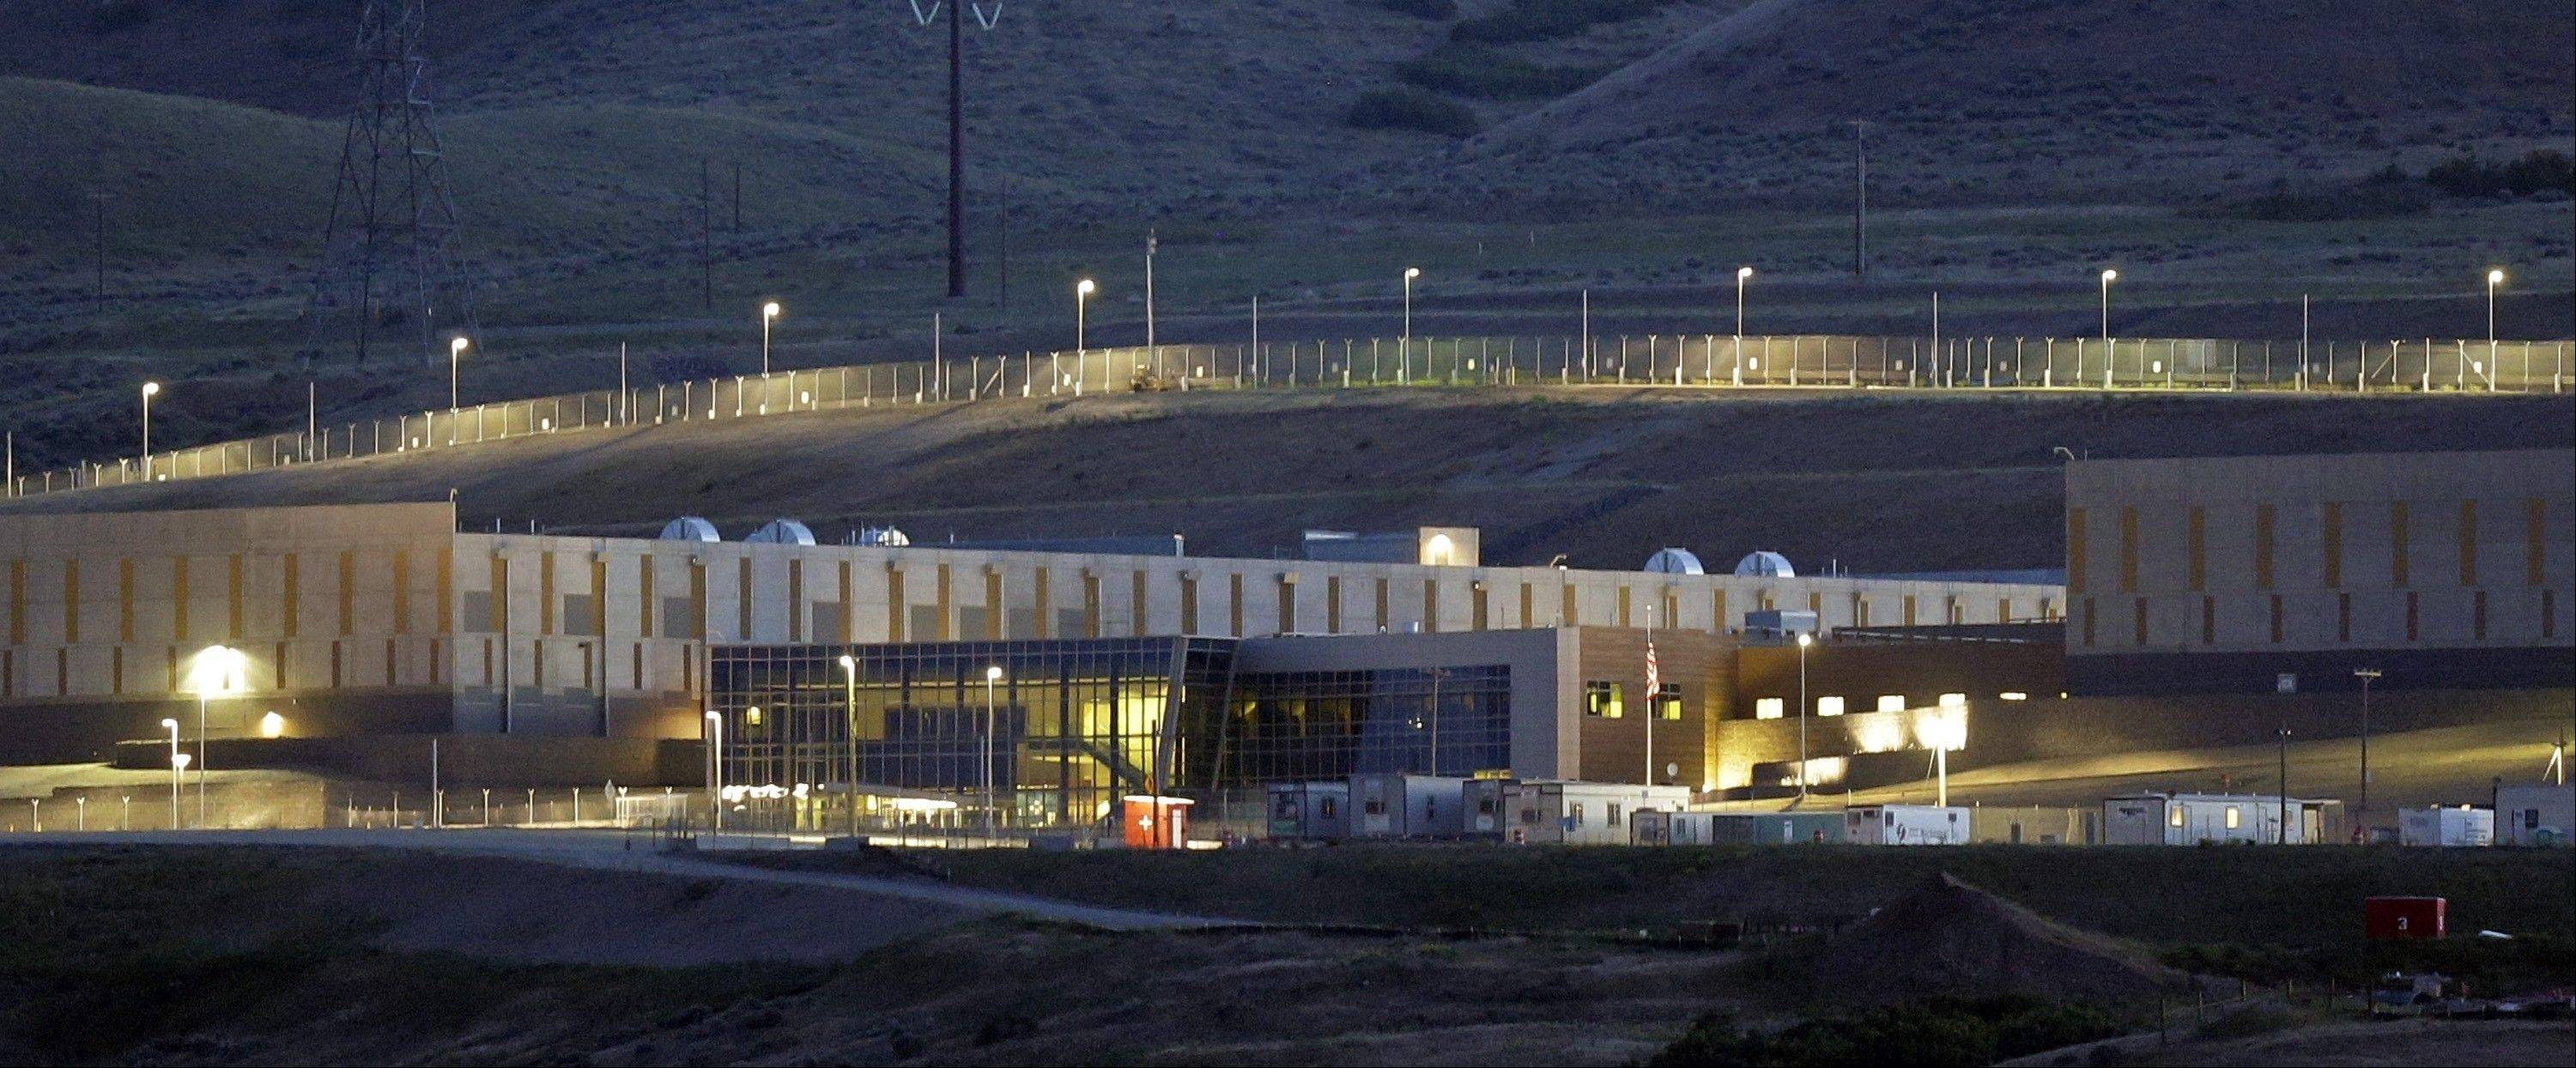 A ground level view of Utah's NSA Data Center in Bluffdale, Utah. The long, squat buildings span 1.5 million square feet, and are filled with superpowered computers designed to store massive amounts of information gathered secretly from phone calls and emails.